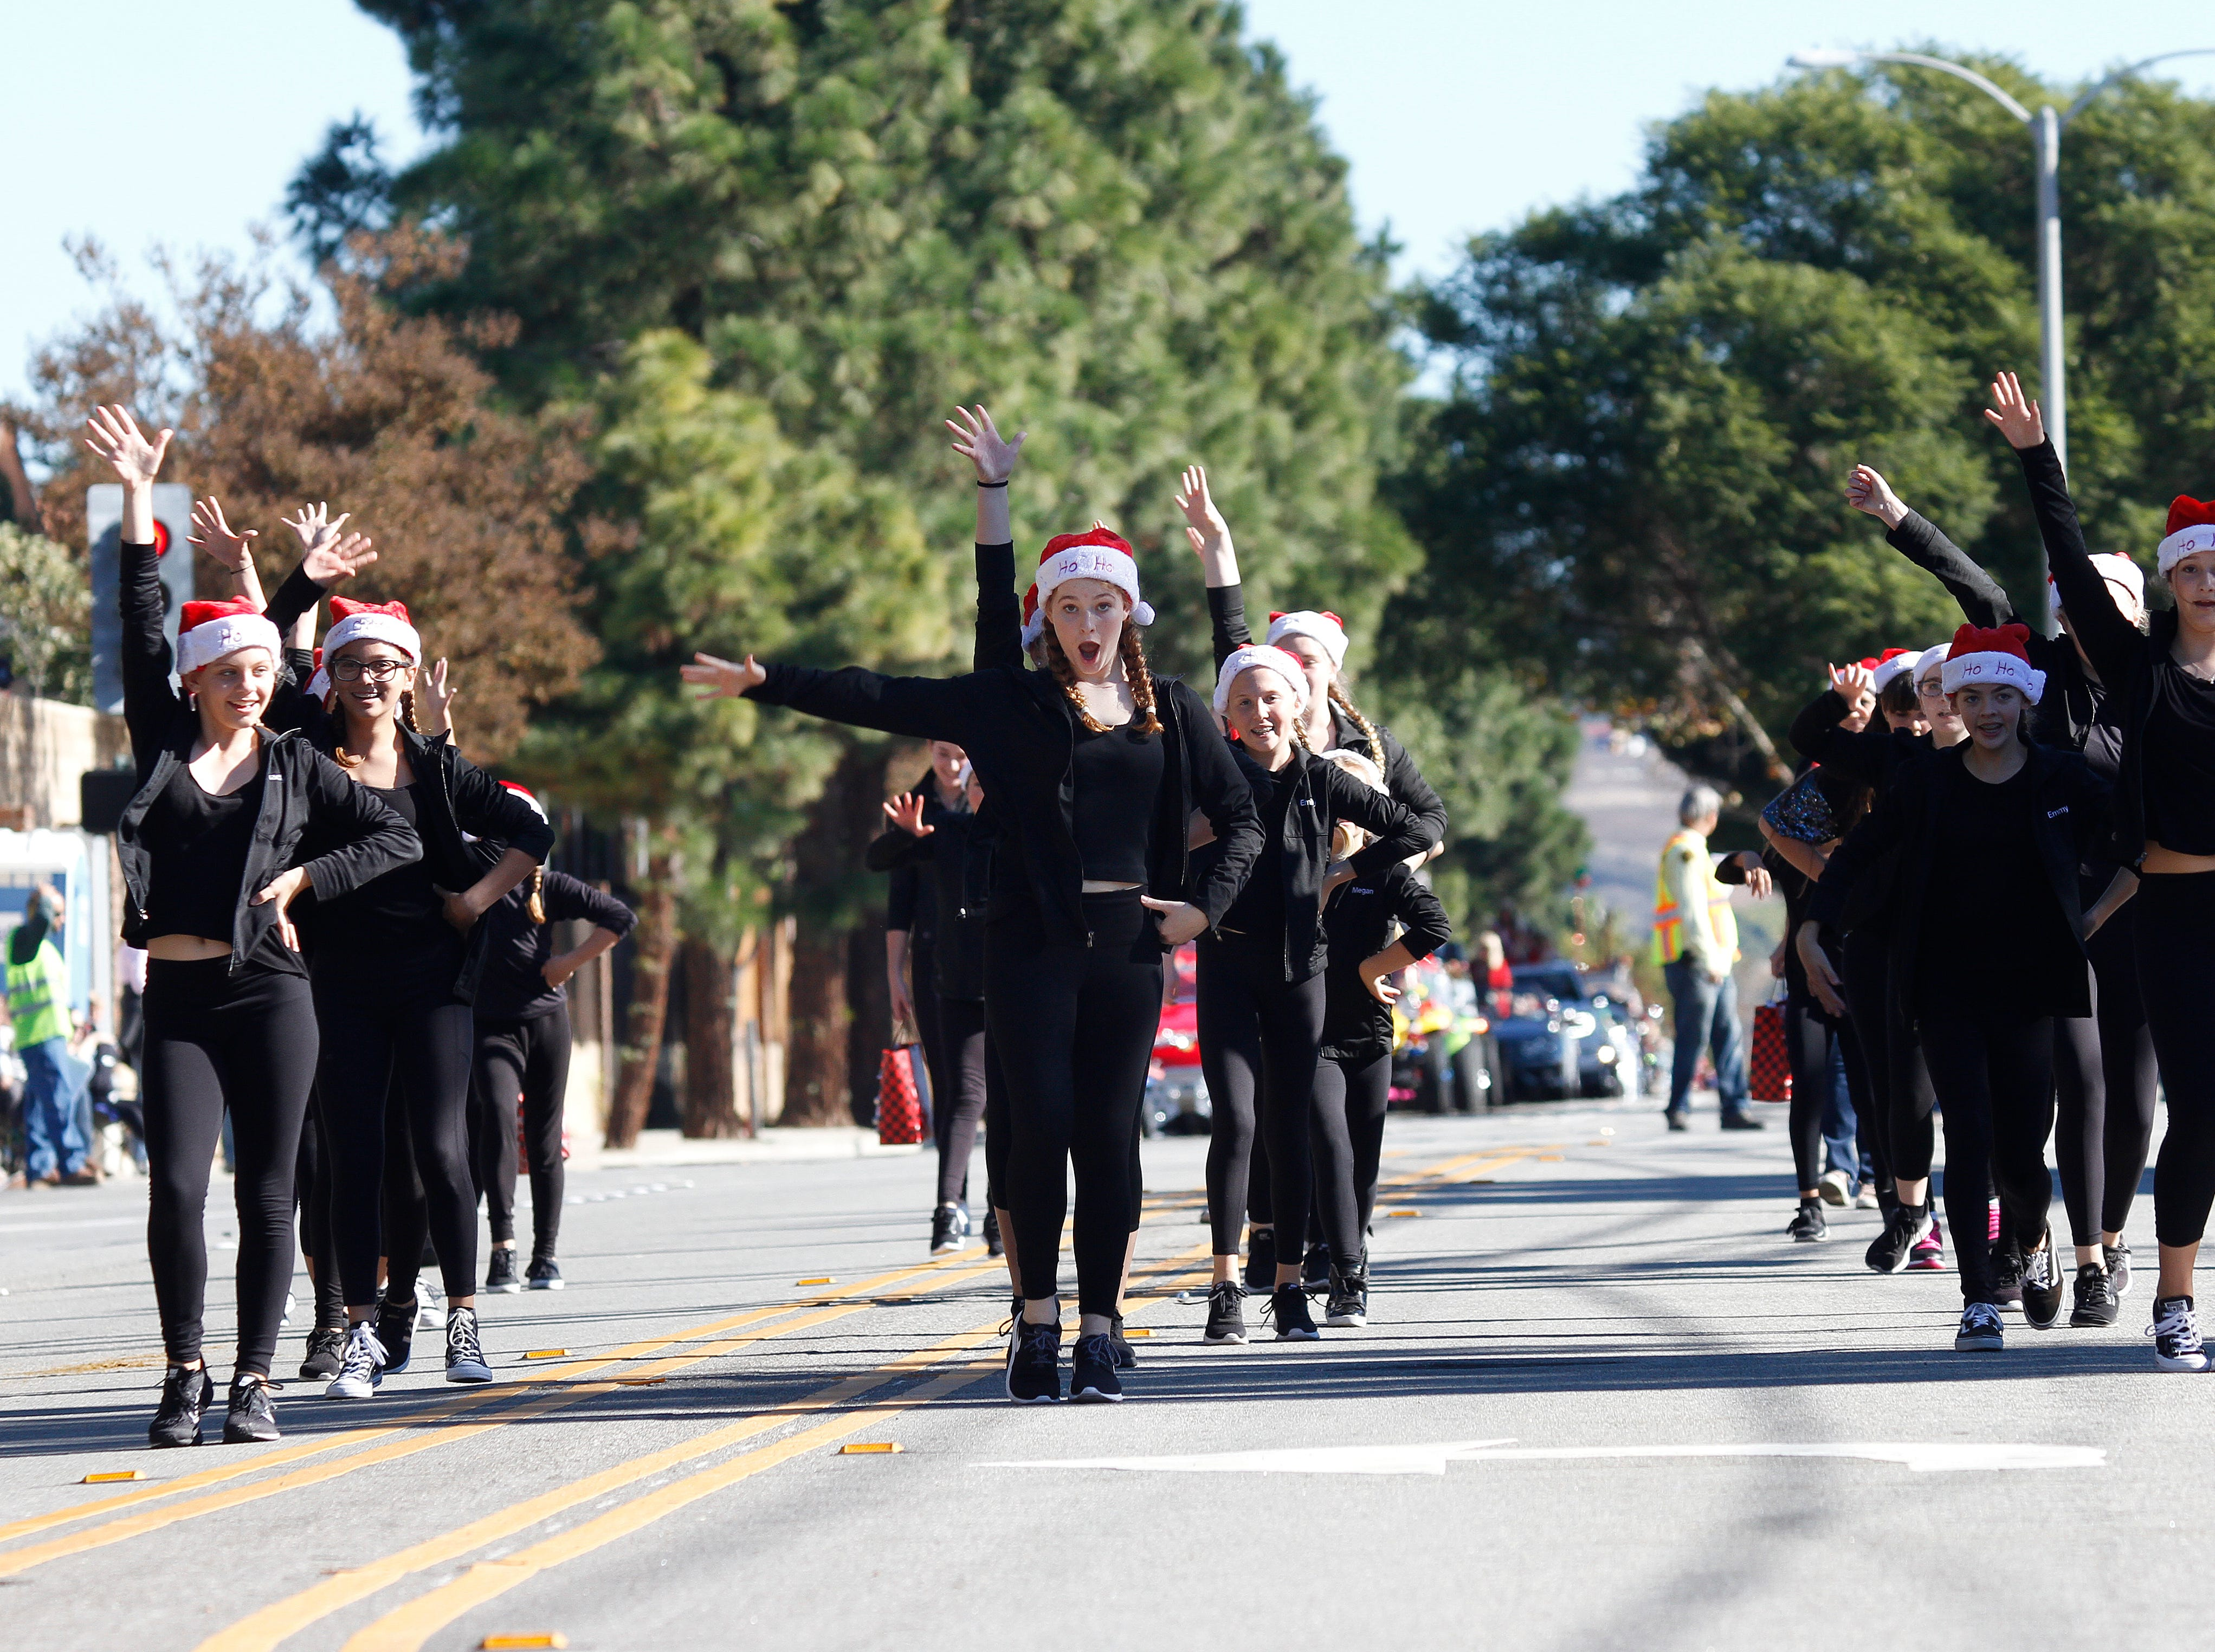 Members of The Dance Company perform in the Camarillo Christmas parade on Saturday.